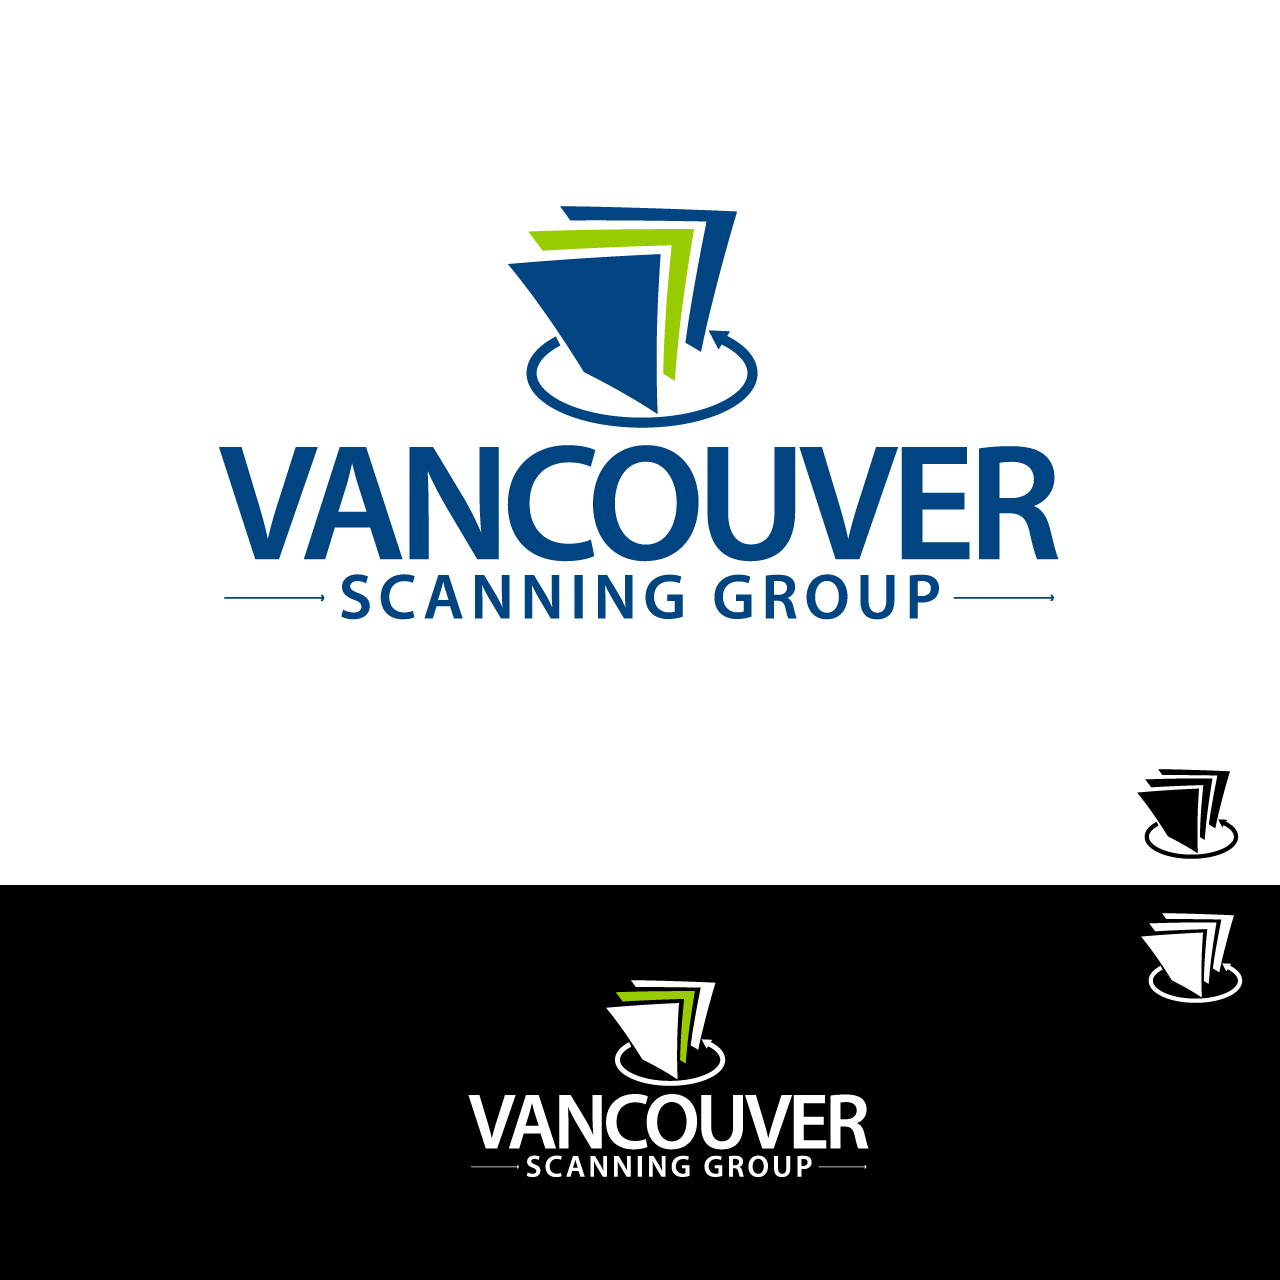 Logo Design by umxca - Entry No. 56 in the Logo Design Contest Vancouver Scanning Group.